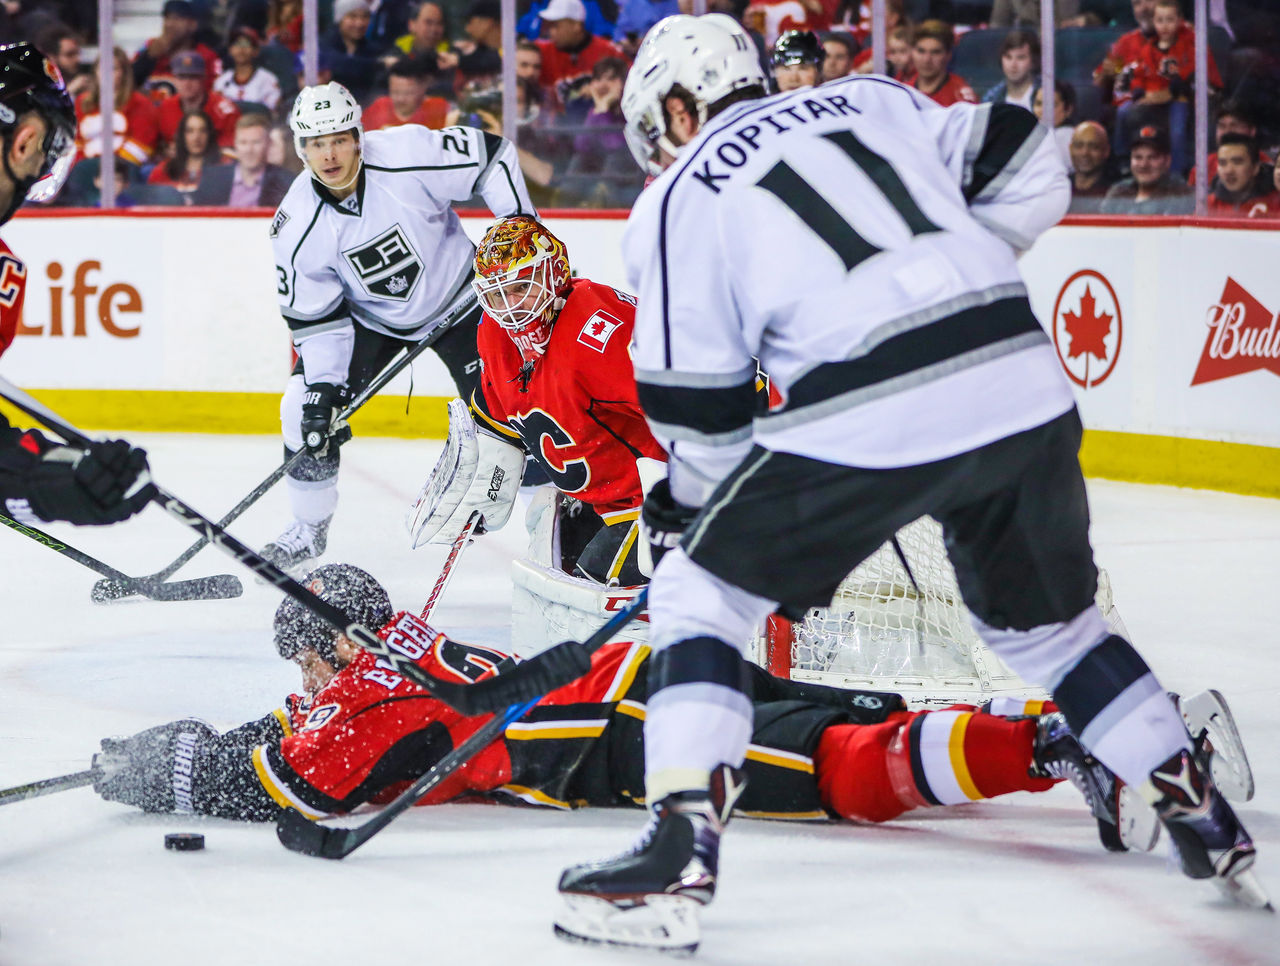 Cropped 2017 03 30t031944z 1499944860 nocid rtrmadp 3 nhl los angeles kings at calgary flames